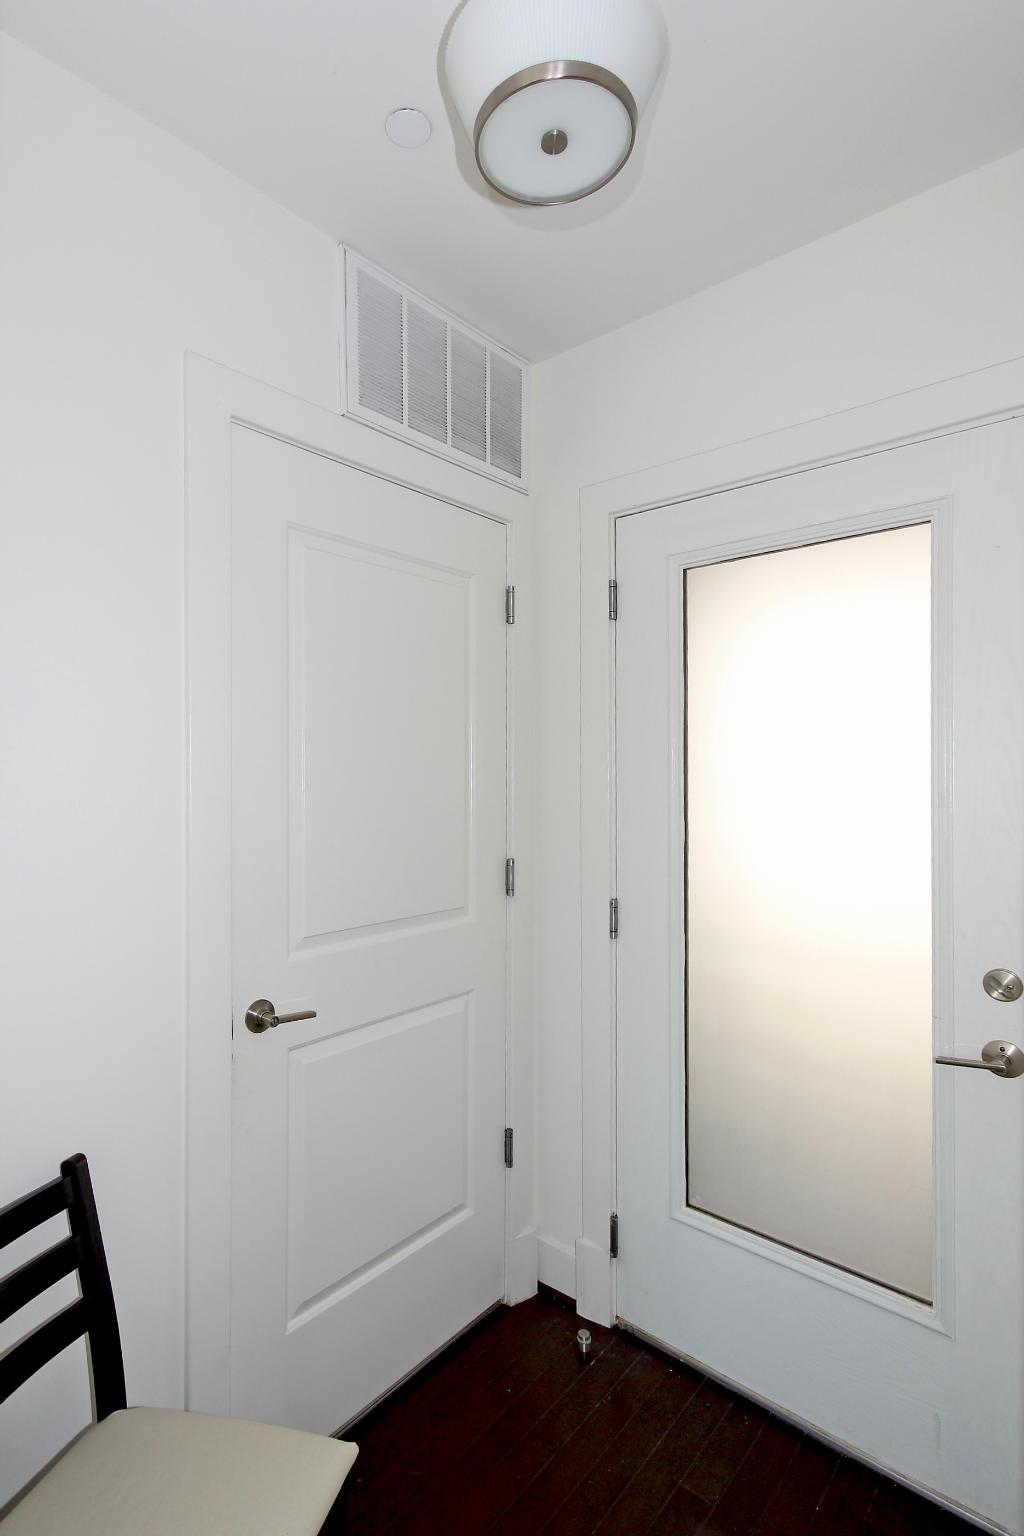 Additional photo for property listing at 5201b Wisconsin Ave Nw #205 5201b Wisconsin Ave Nw #205 Washington, District Of Columbia 20015 United States